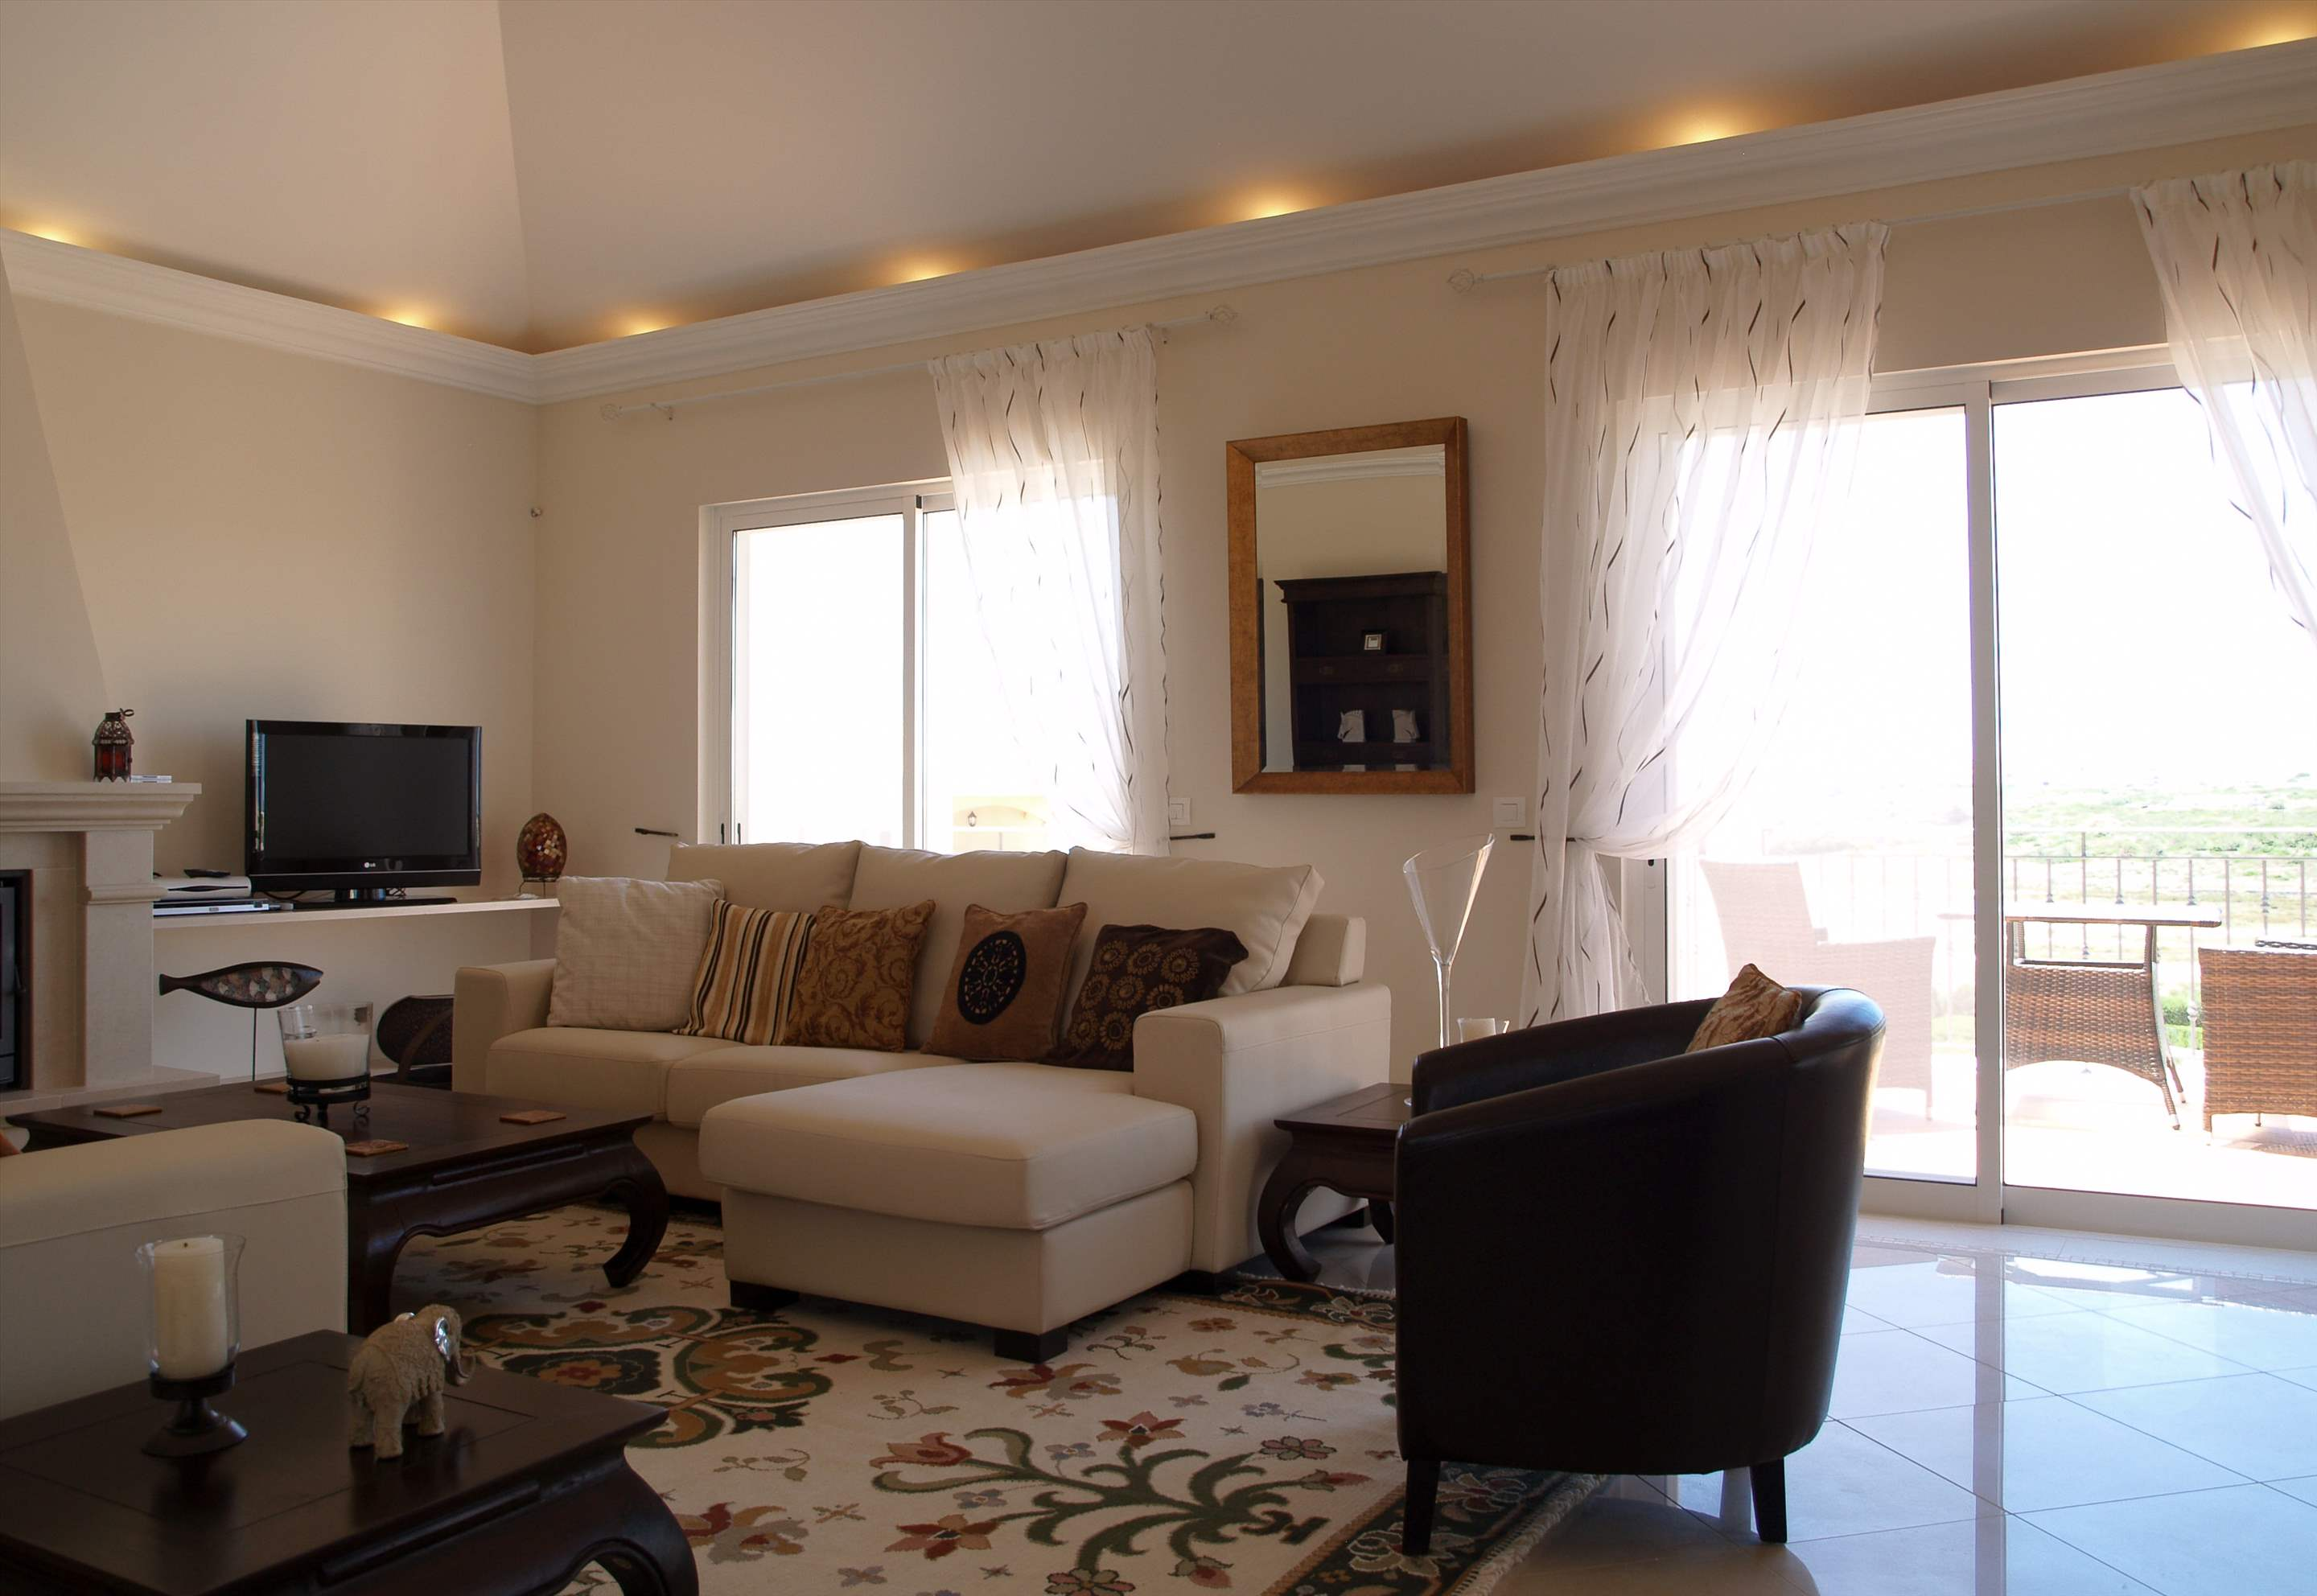 Martinhal Luxury Villa No.44, 3 bedroom villa in Martinhal Sagres, Algarve Photo #9